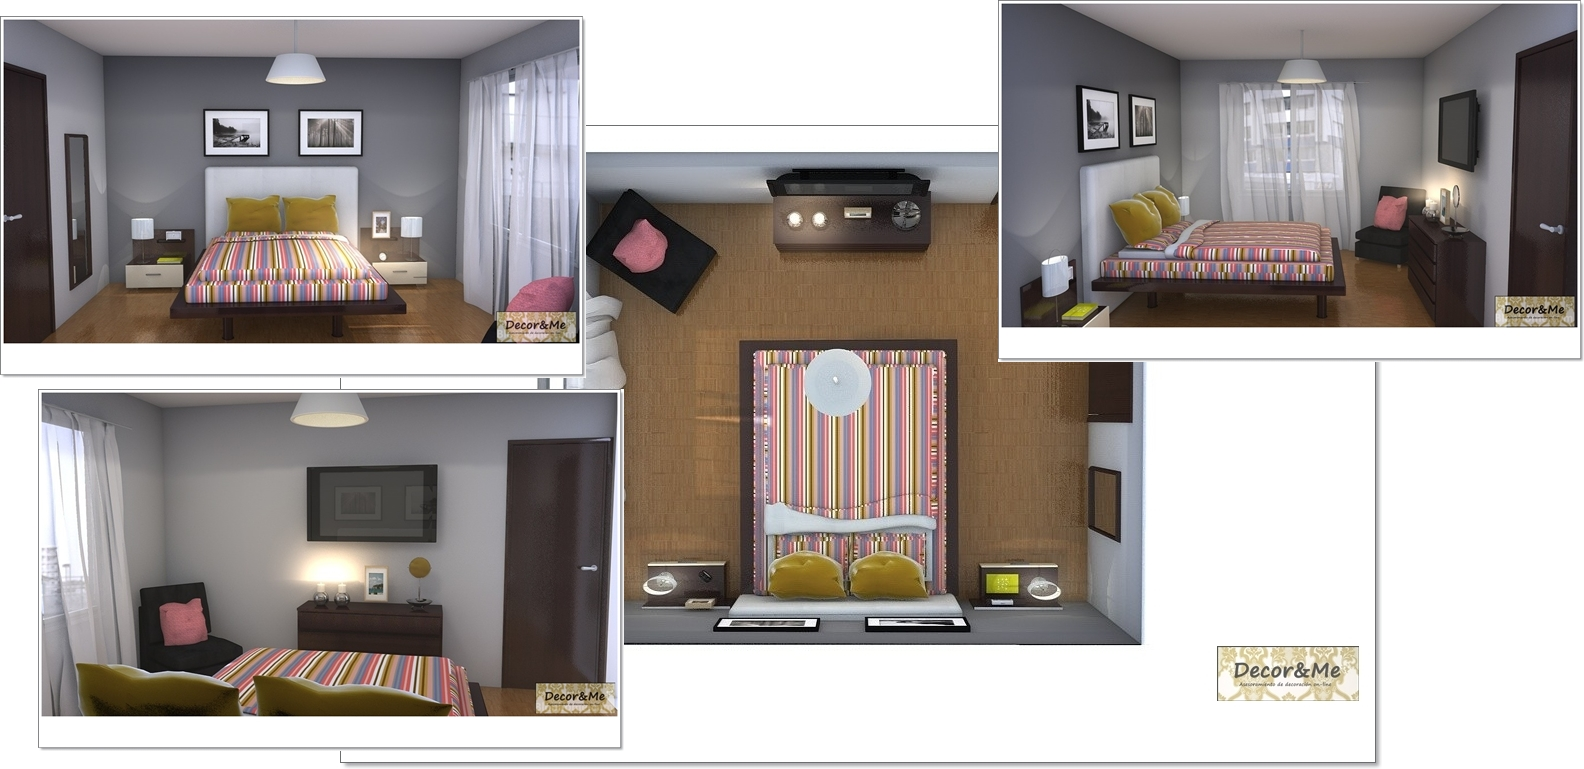 Decor me proyecto de piso en m xico dormitorio principal for Cortinas dormitorio zara home